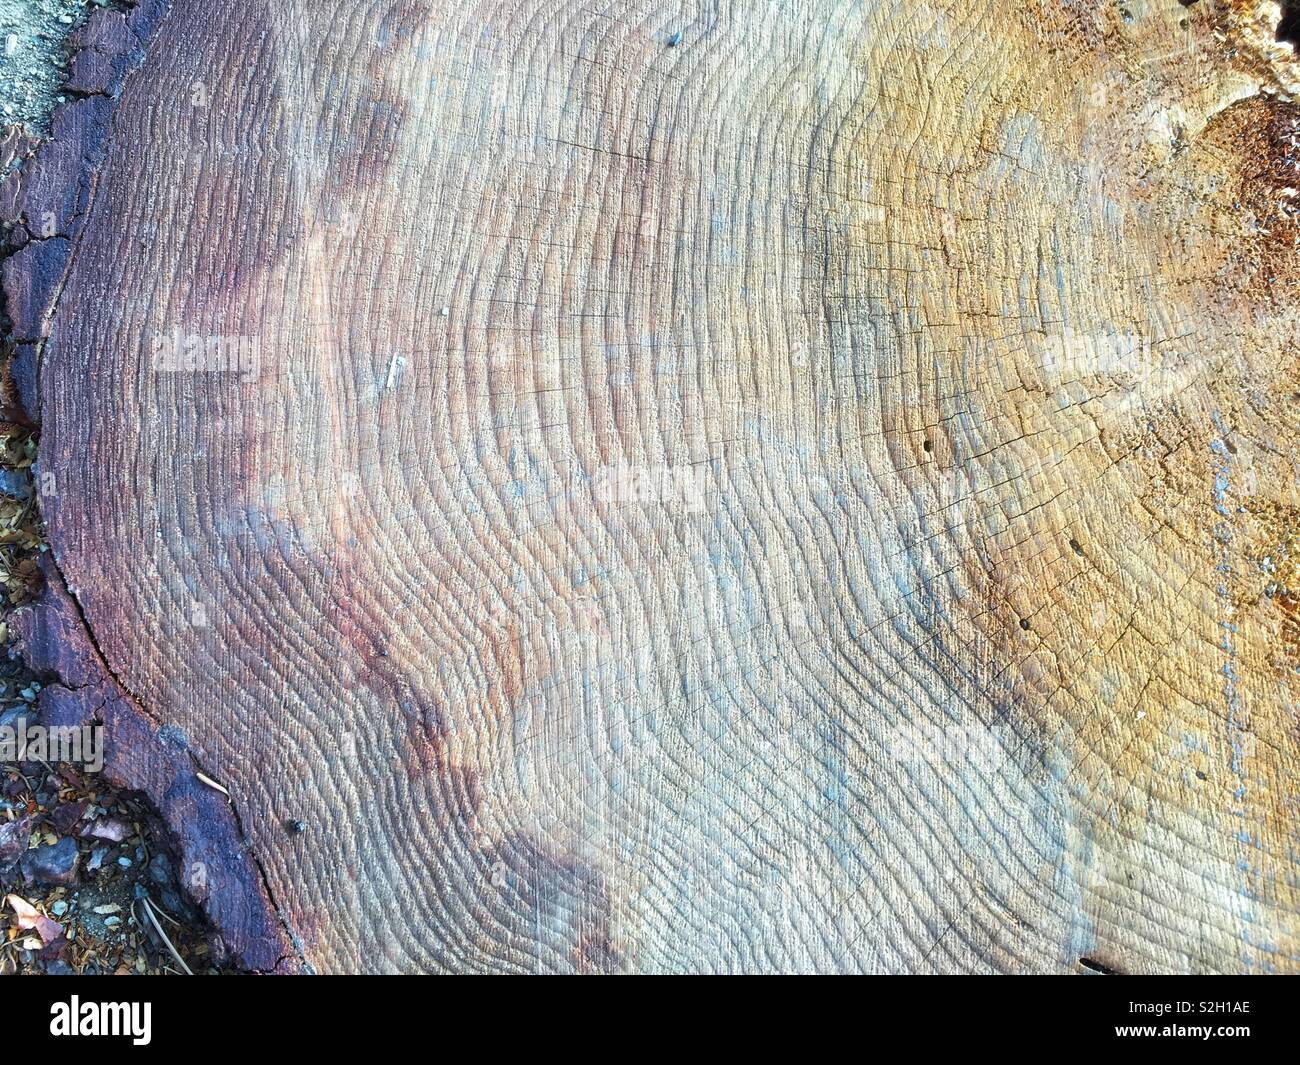 A section of a cut down tree - Stock Image